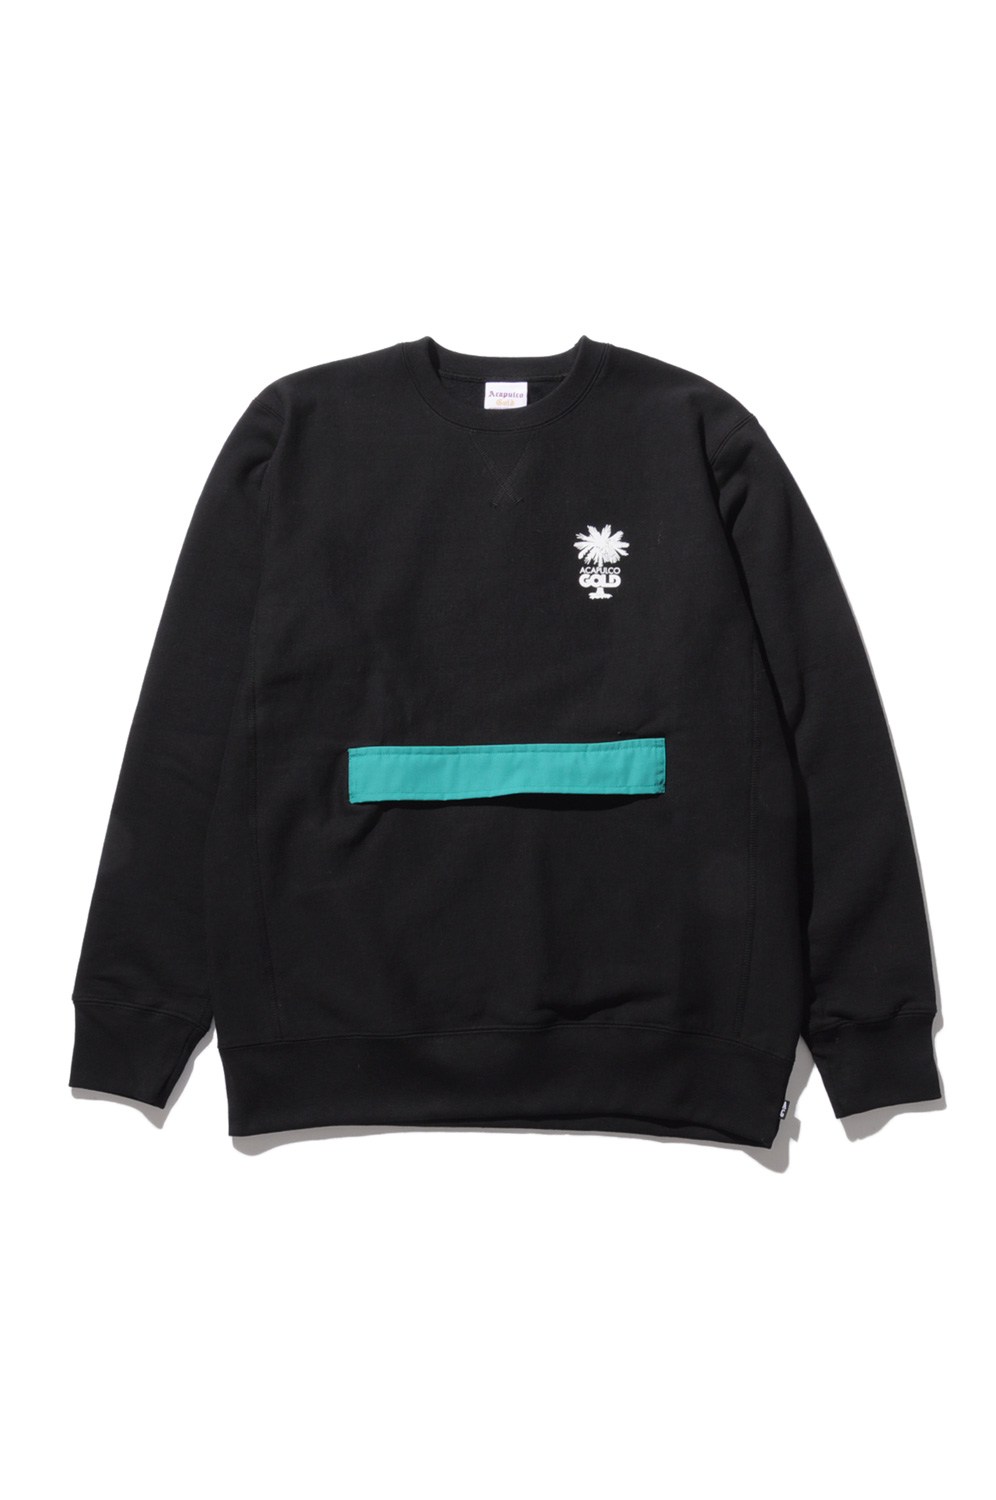 画像1: 【ACAPULCO GOLD】STOW POCKET CREWNECK